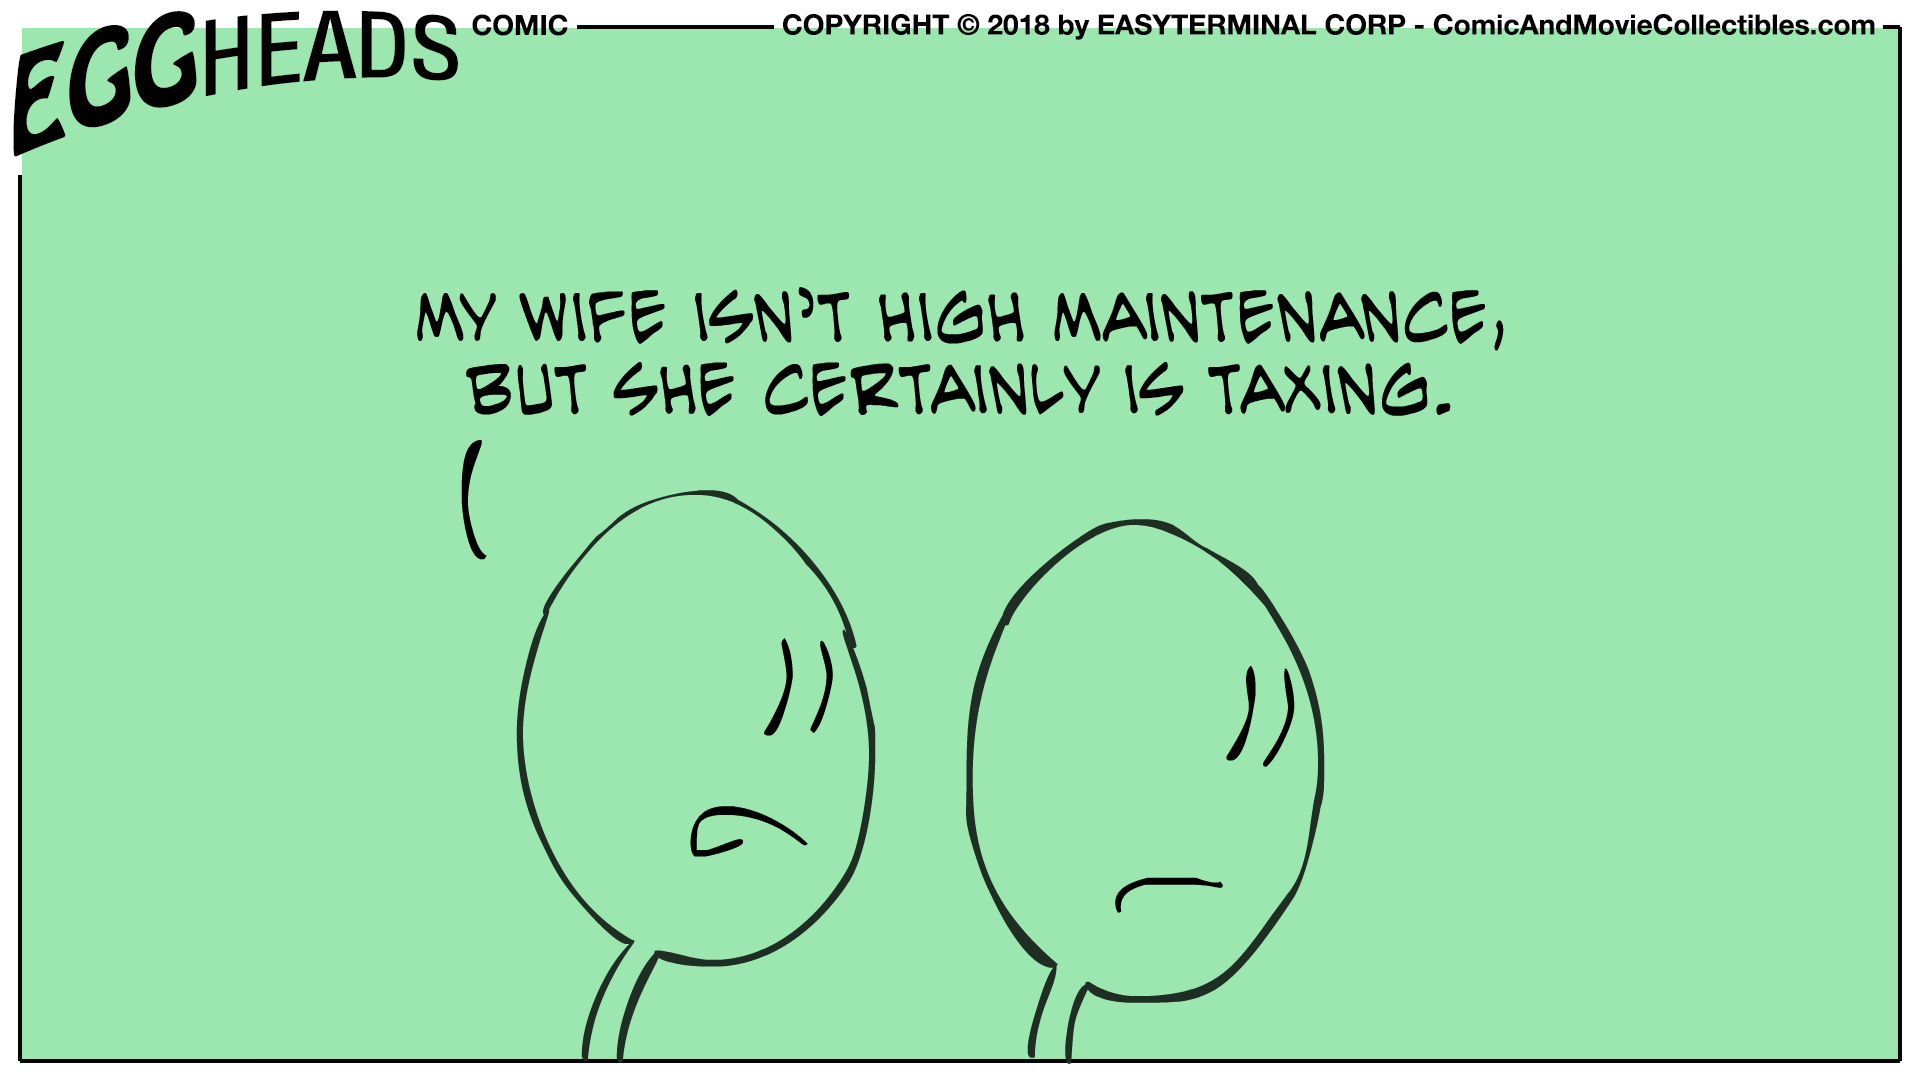 Webcomic Eggheads Comic Strip 030 High Maintenance